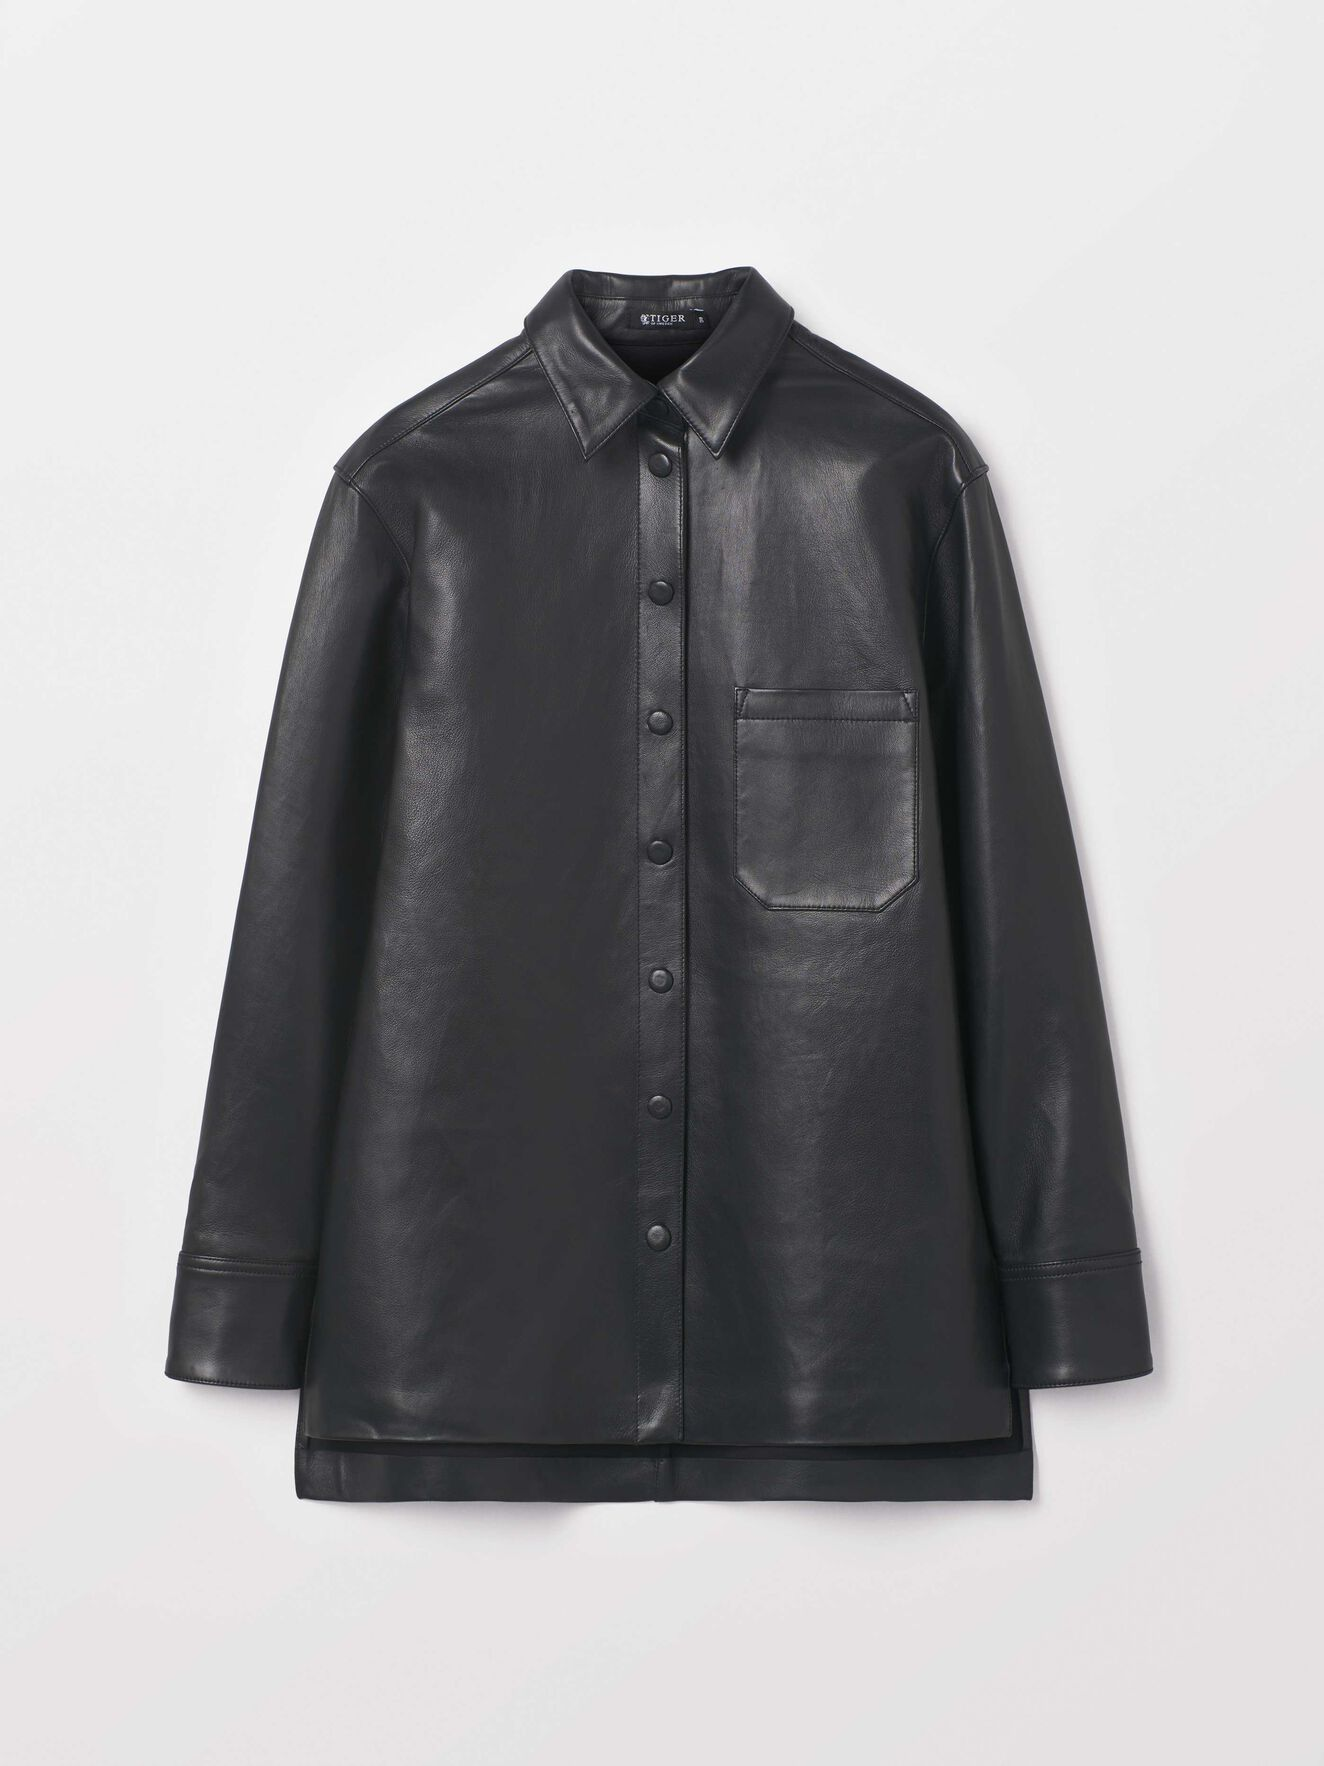 Ancer L Shirt in Midnight Black from Tiger of Sweden